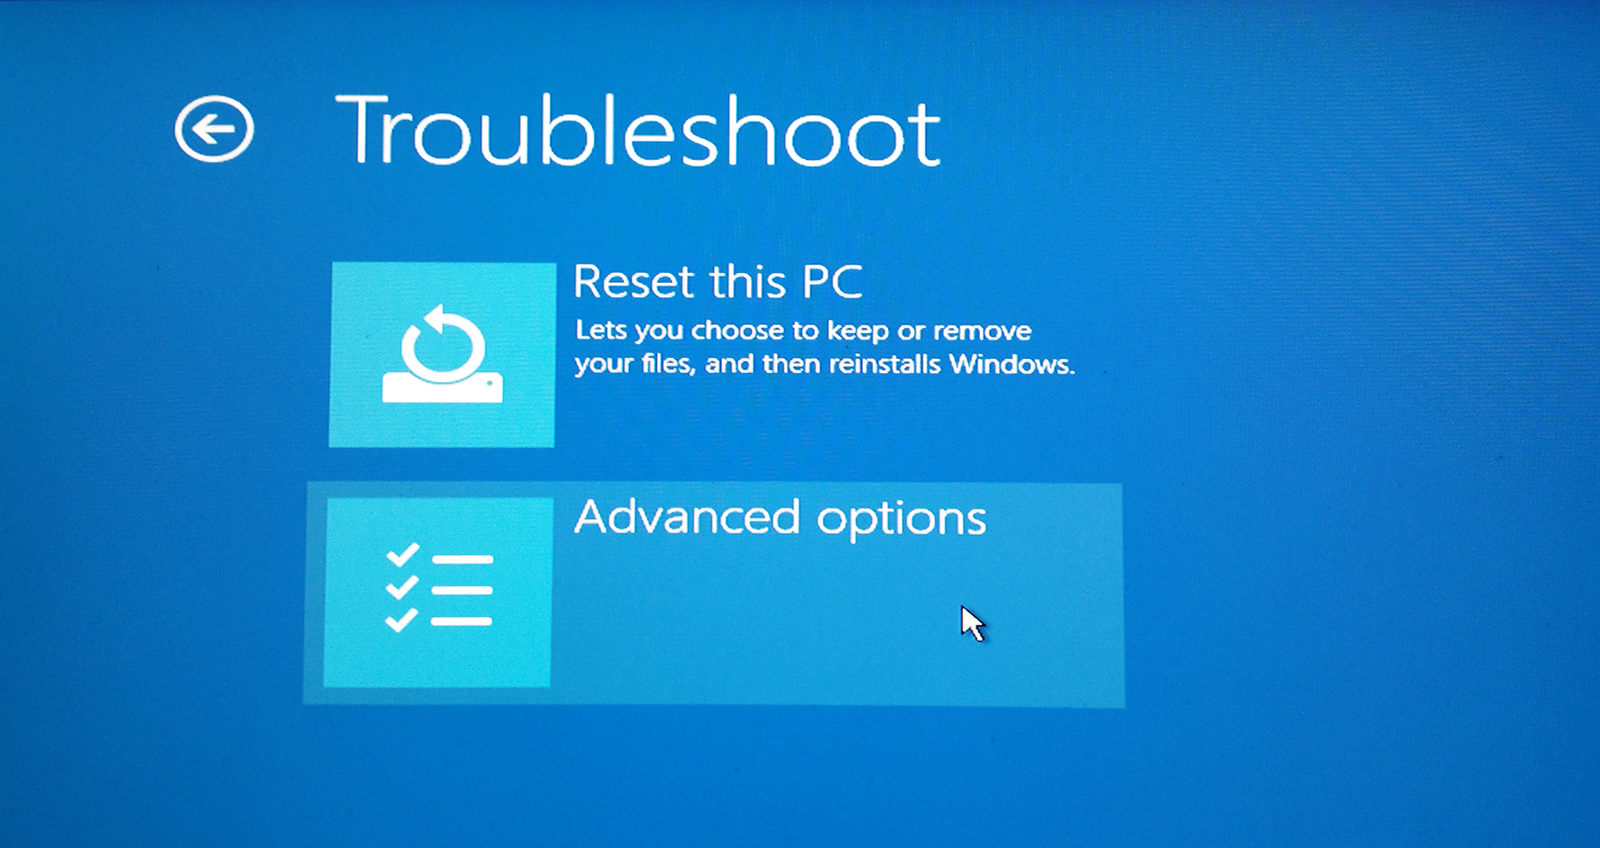 Repairing Windows 10: Troubleshoot